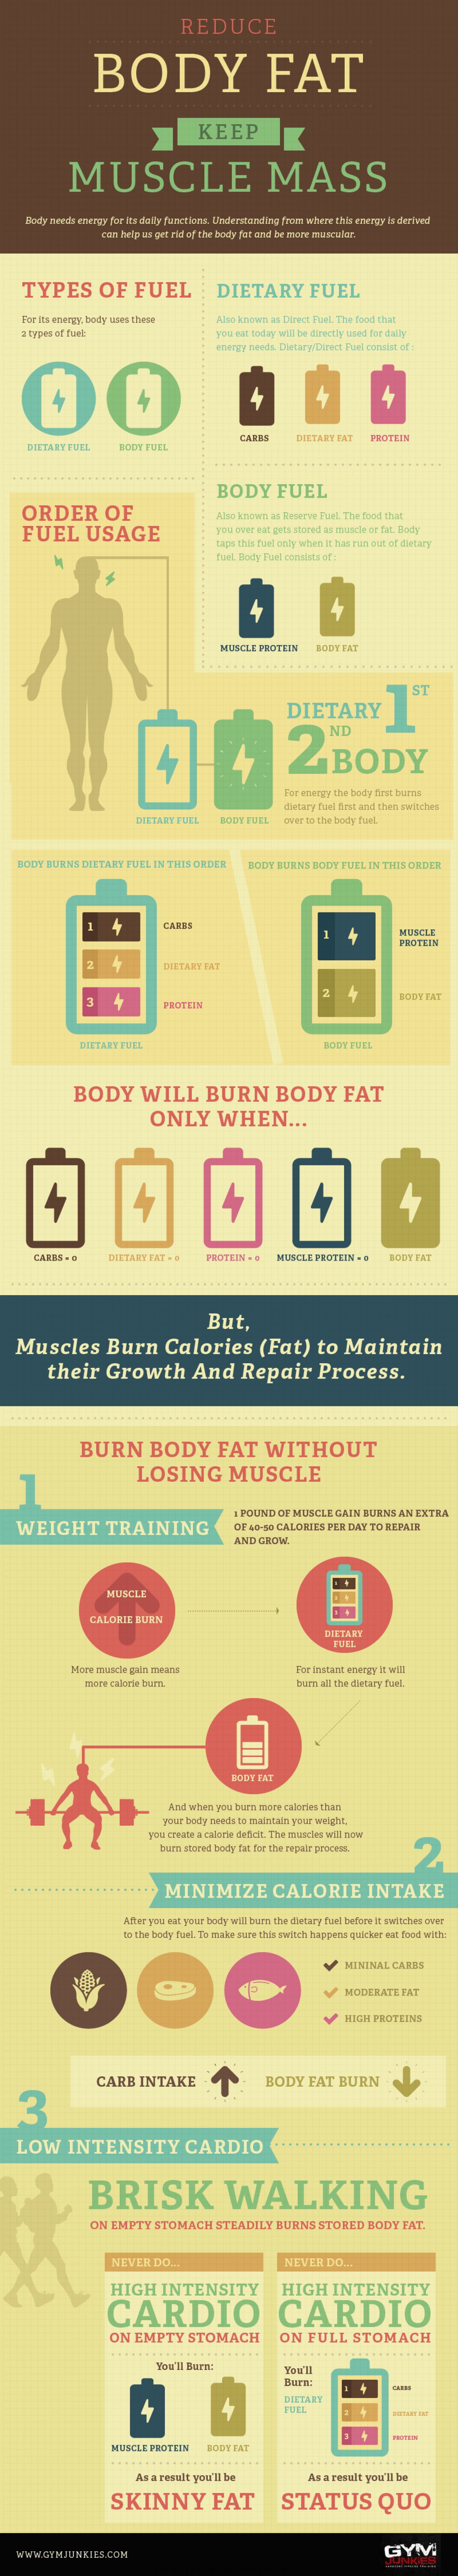 Reduce Your Body Fat Keep Muscle Mass  Infographic